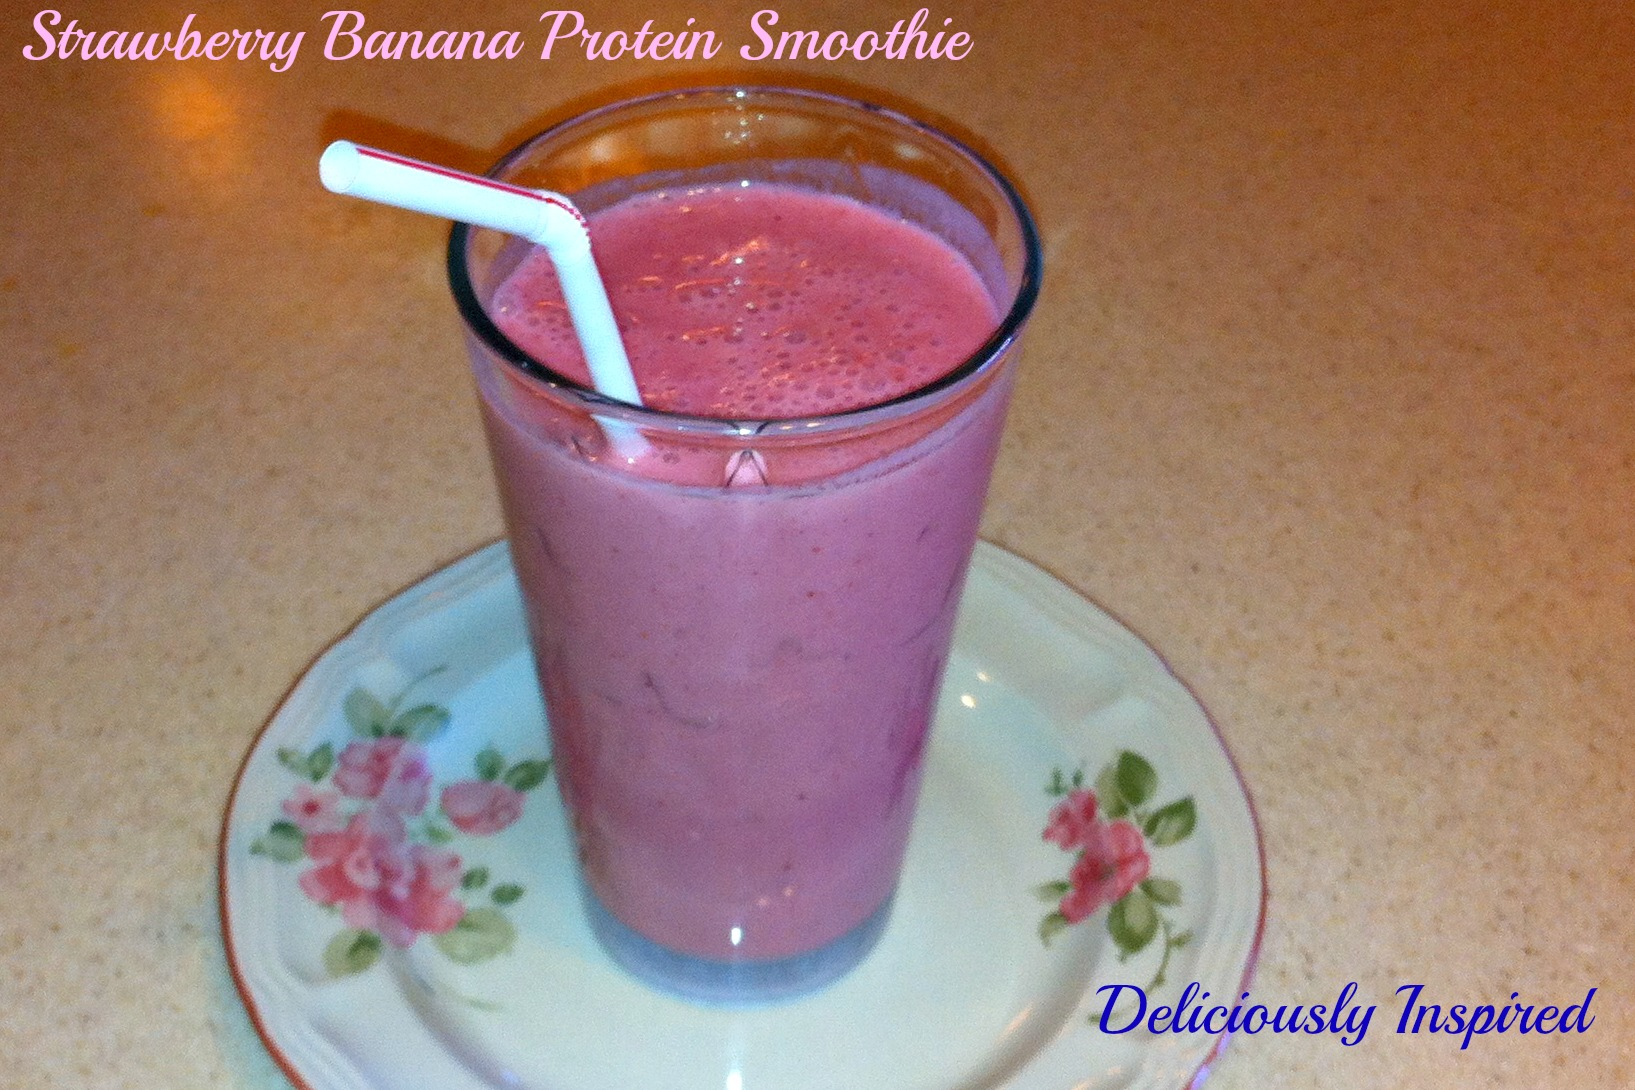 Strawberry Banana Protein Smoothie